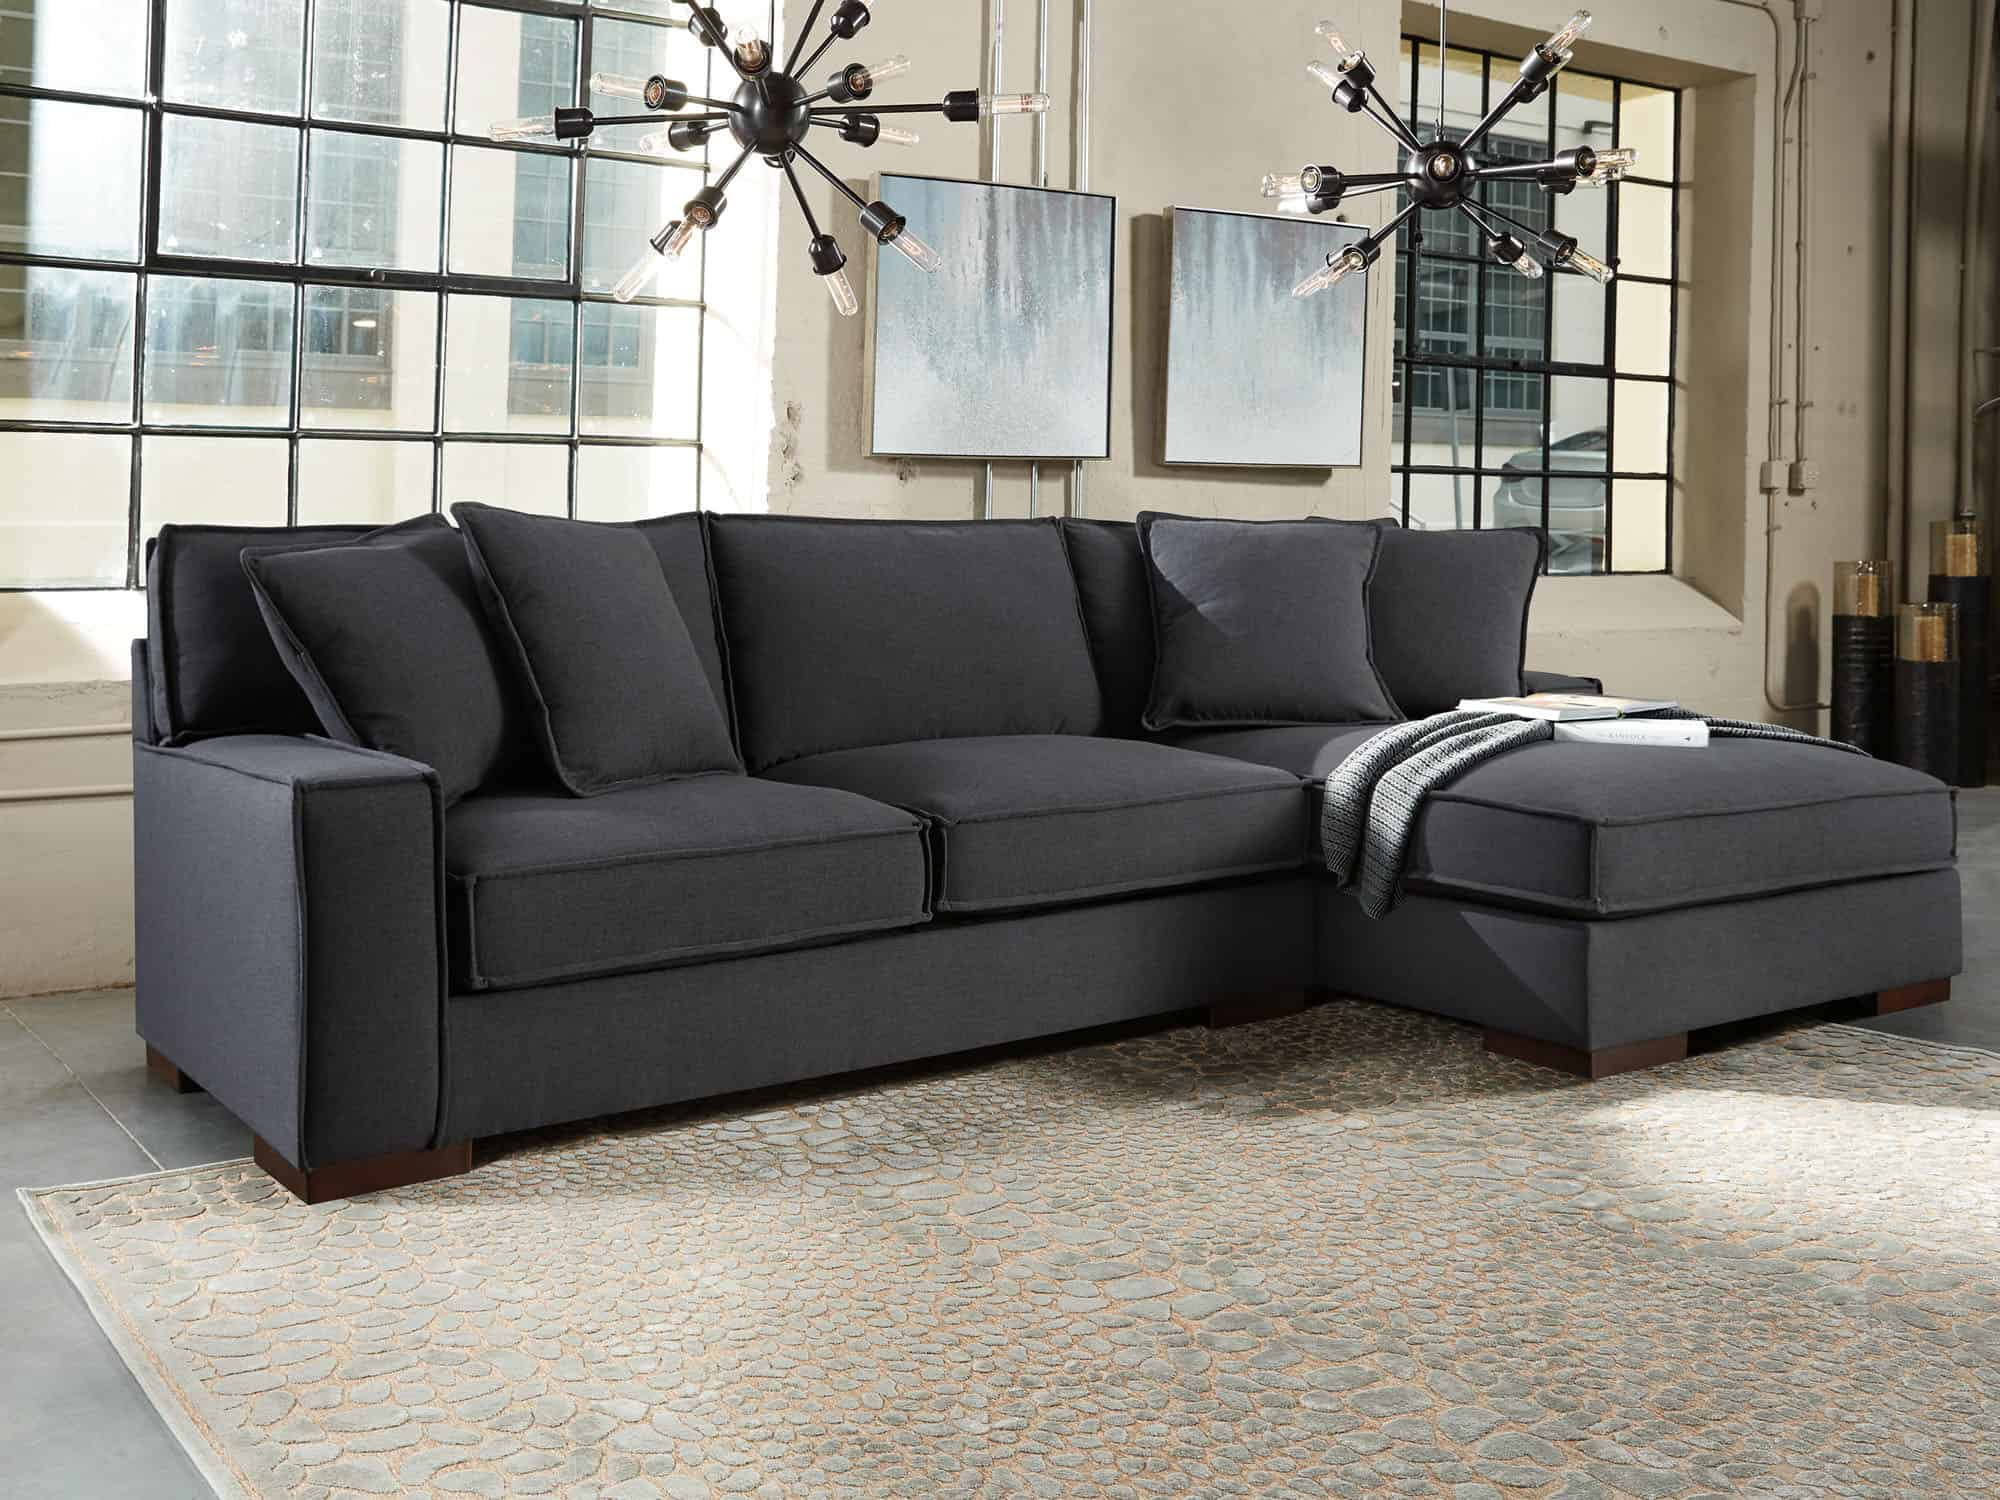 Glamour Corner sofa with chaise